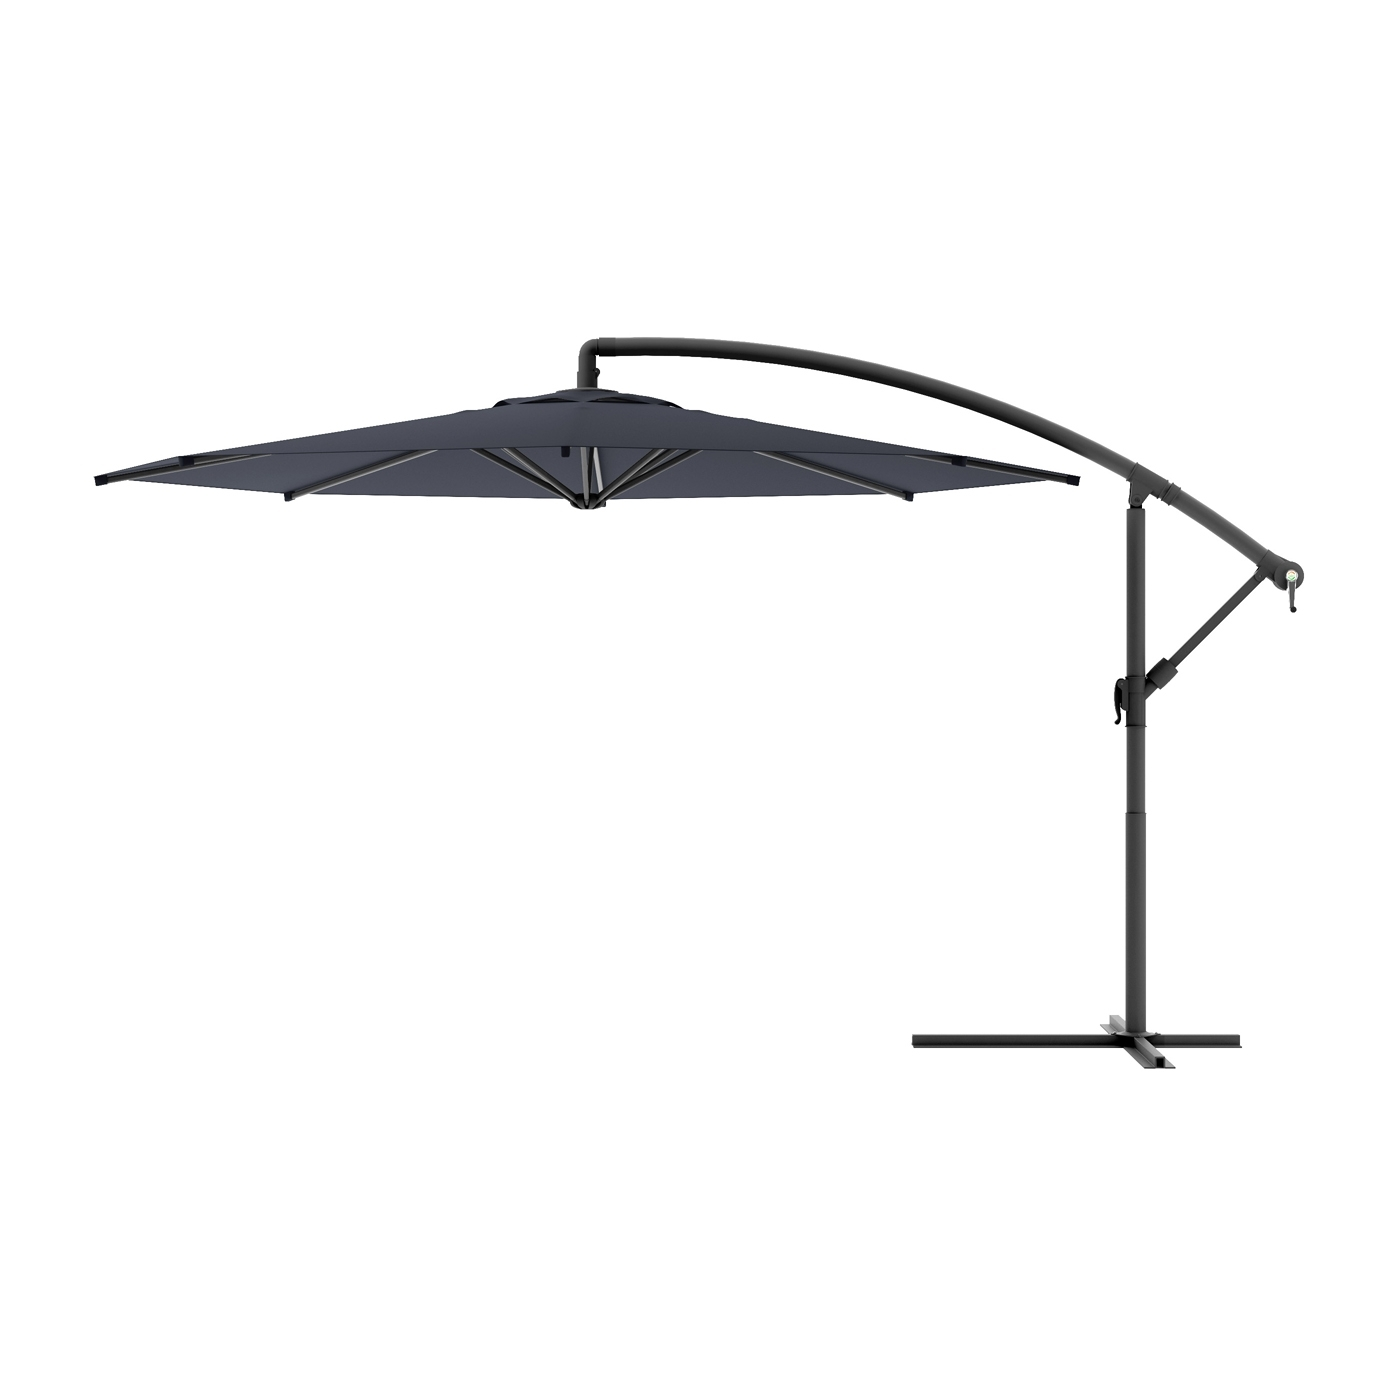 Corliving Ppu 4 Cantilever Patio Umbrella (View 1 of 20)